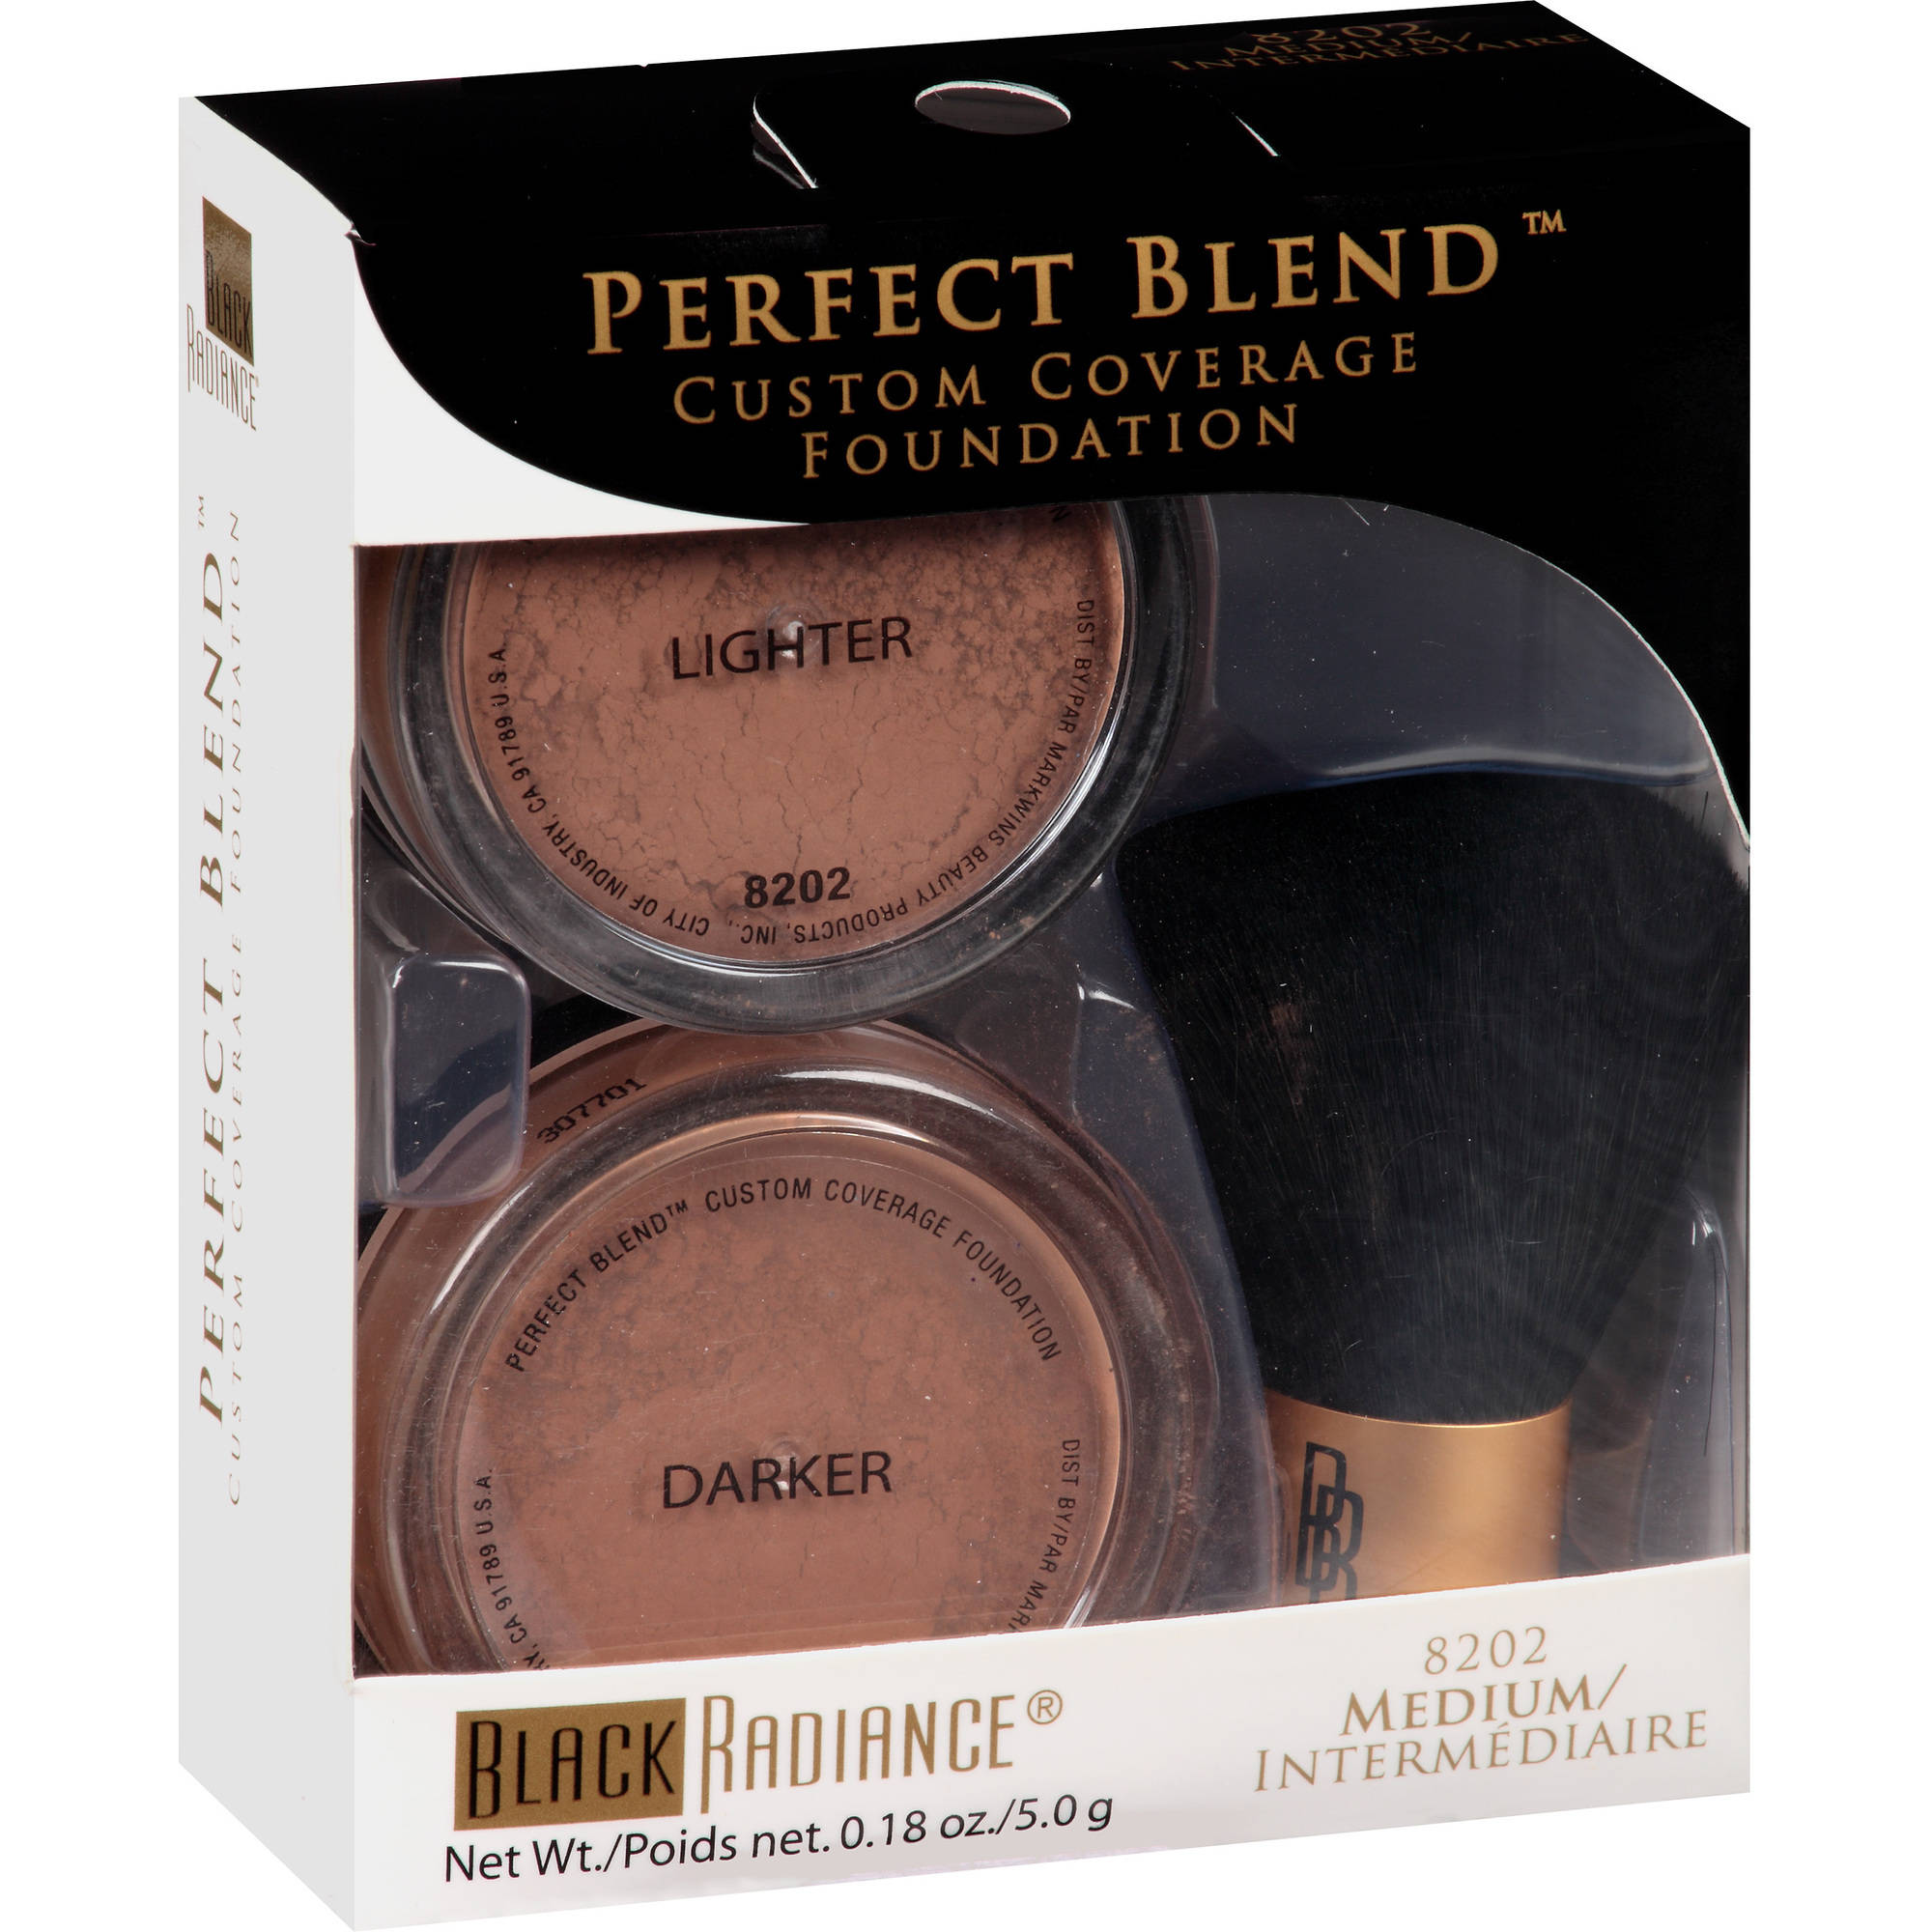 Black Radiance Perfect Blend Mineral Foundation, 8202 Medium, 0.18 oz